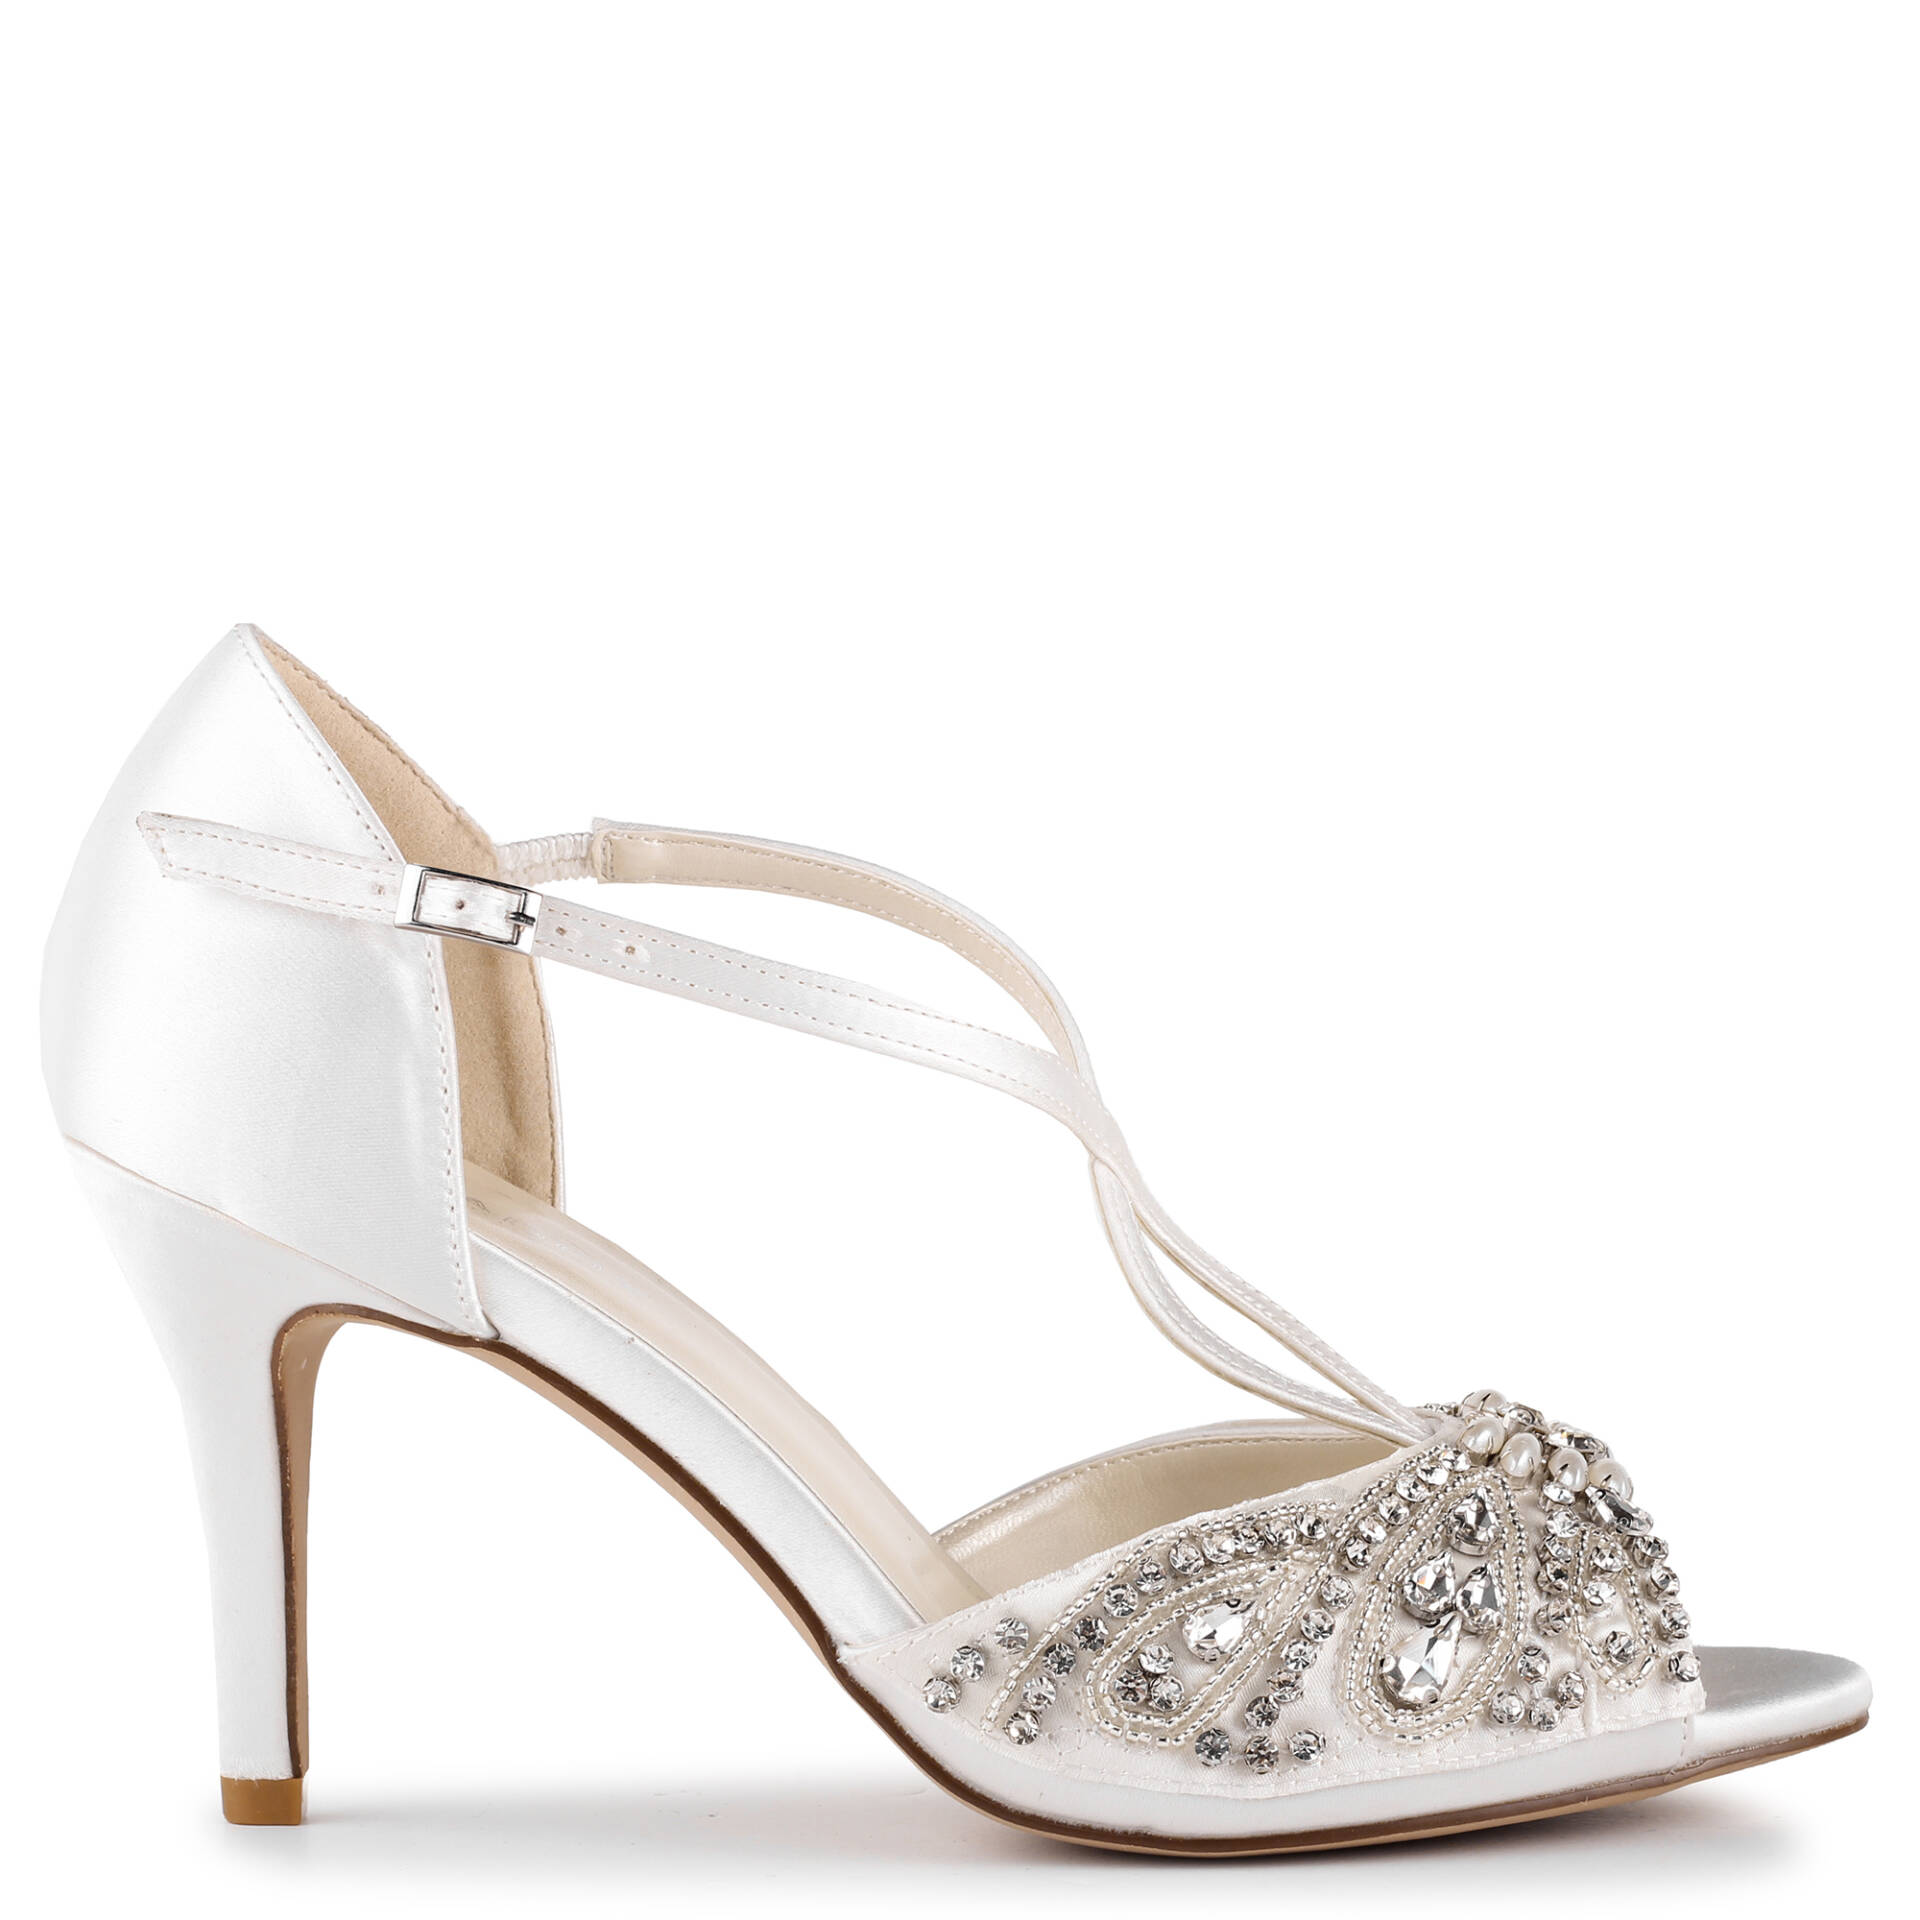 Paradox London wedding shoe